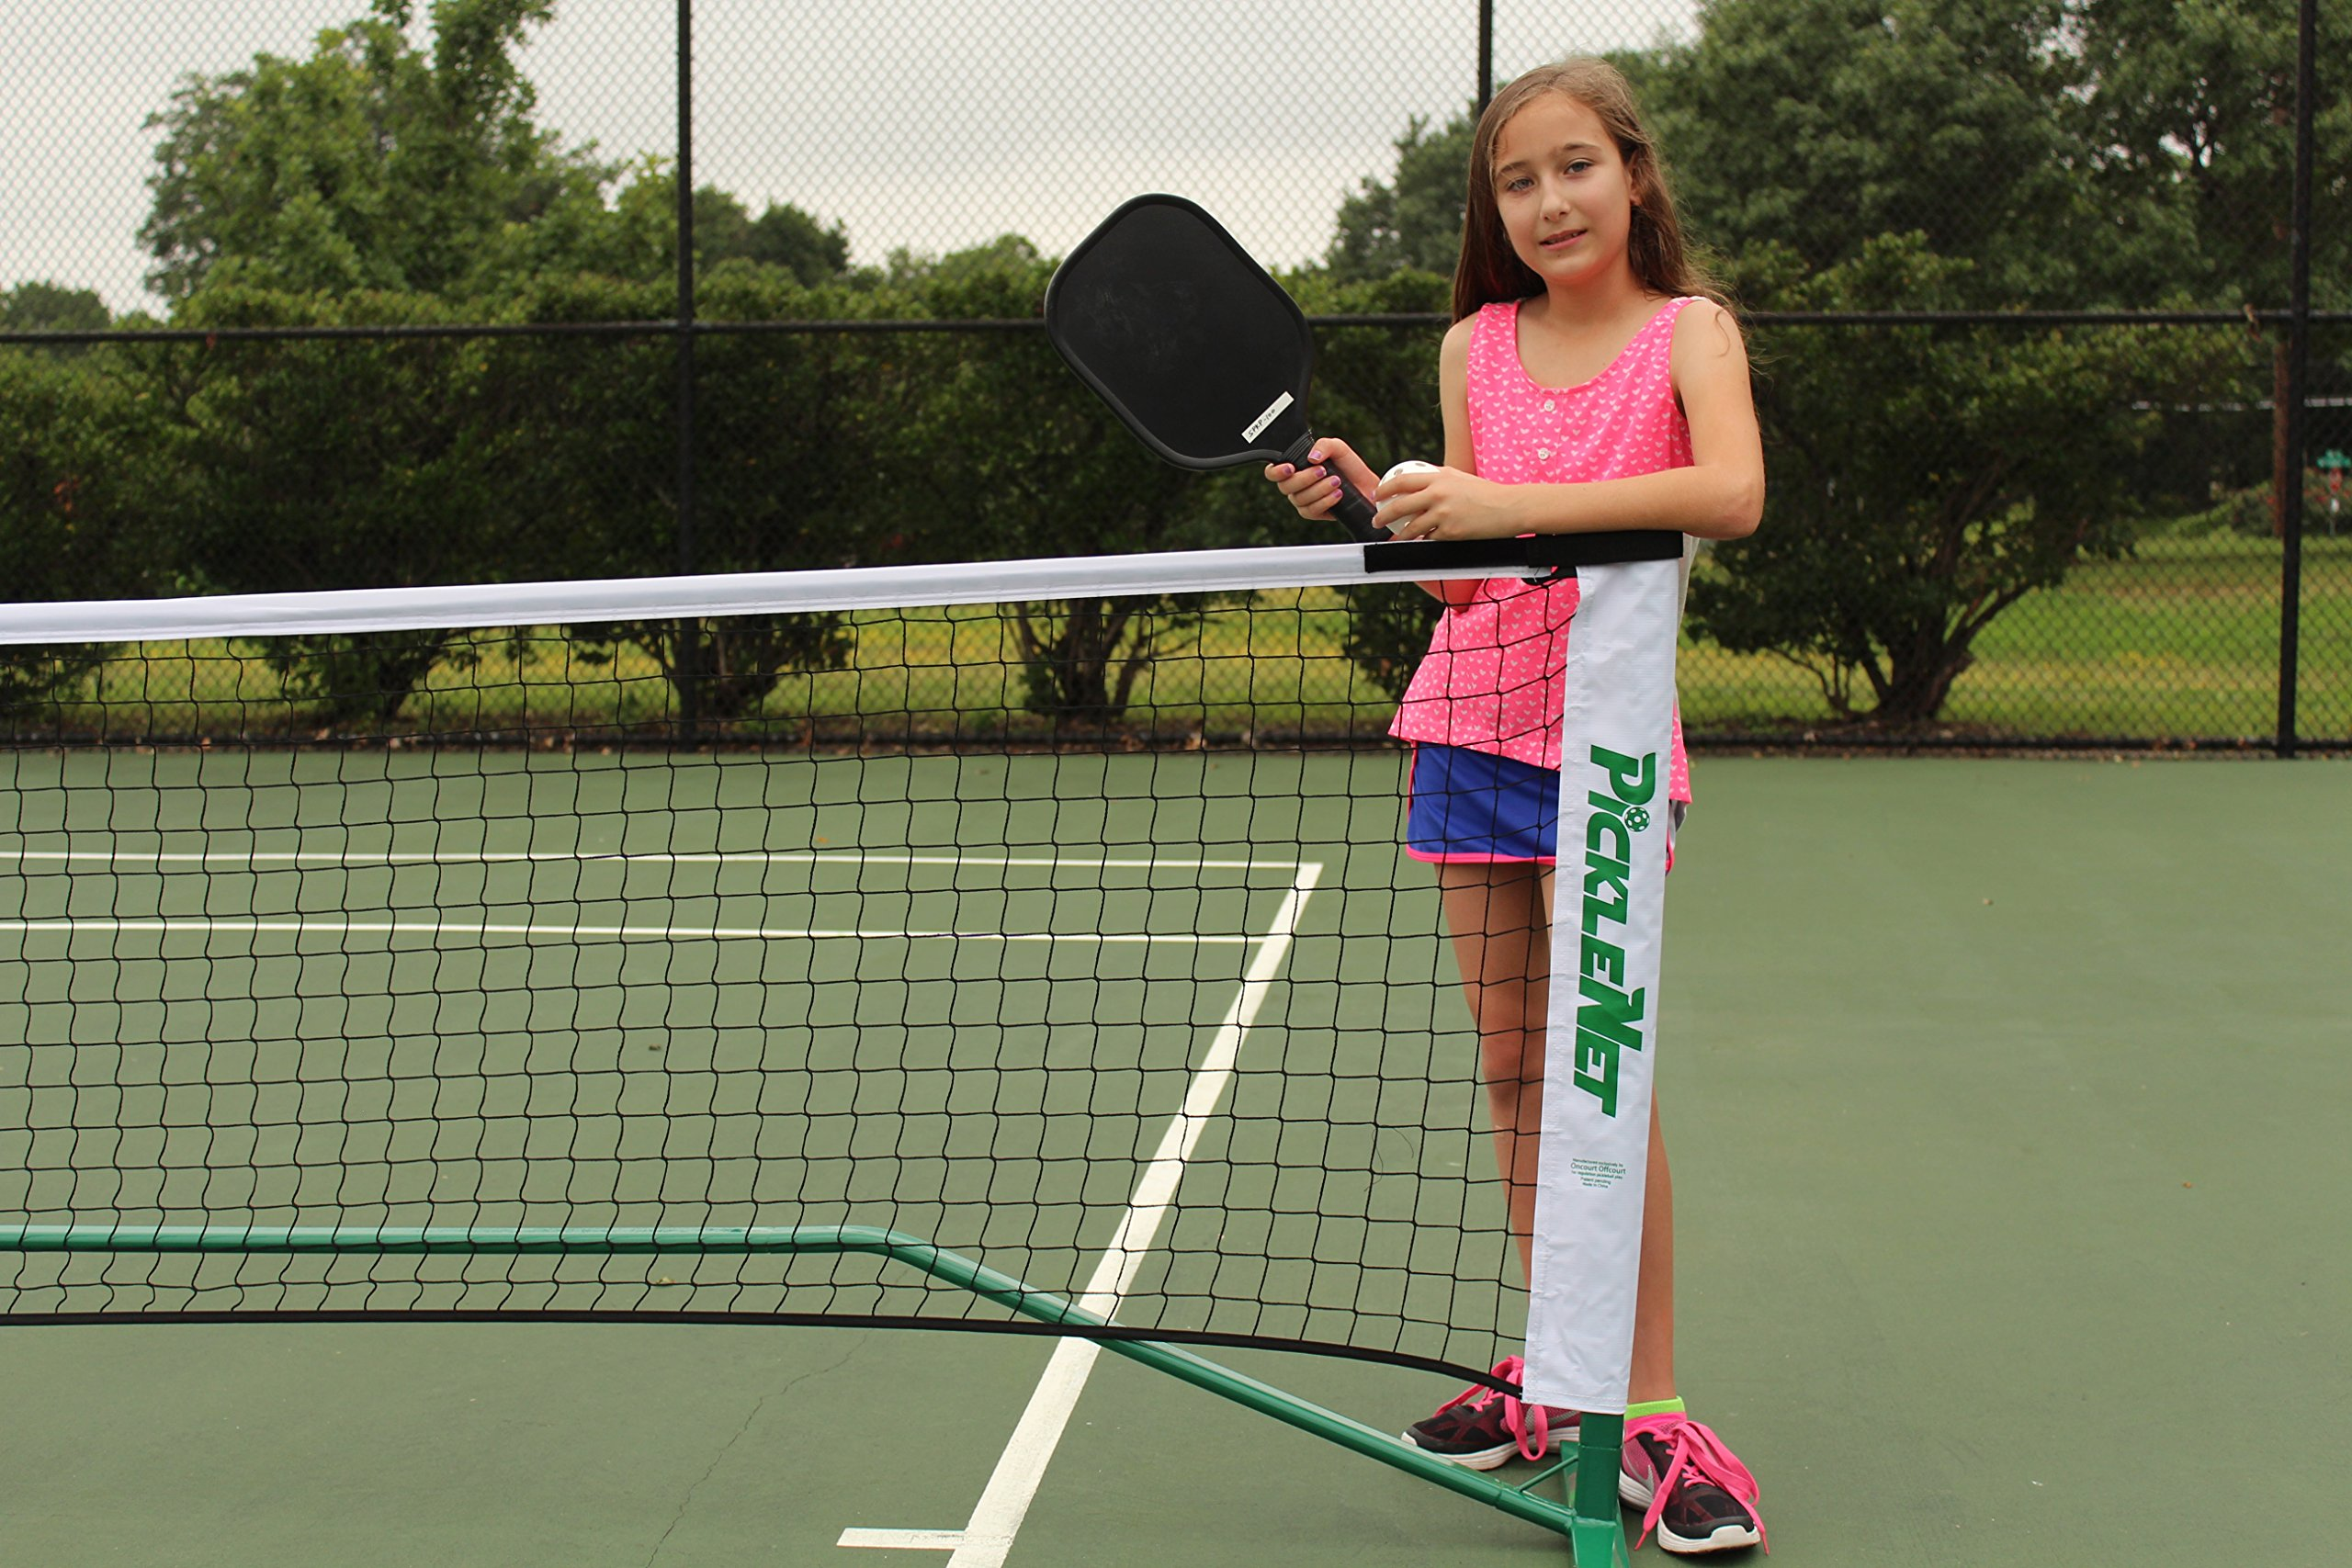 OnCourt OffCourt PickleNet - Easy Assembly / Official Pickleball Size by Oncourt Offcourt (Image #8)